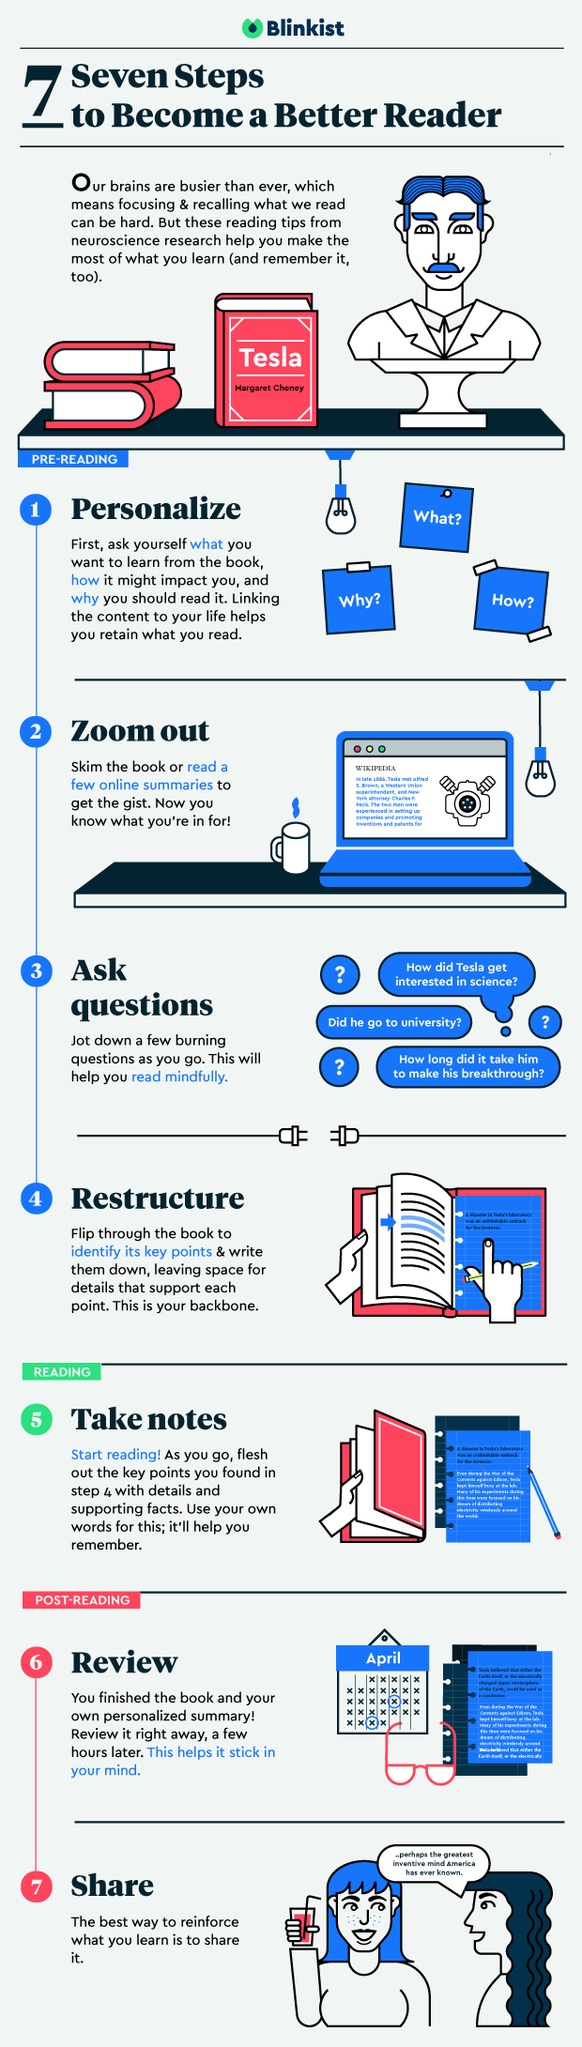 Seven steps to get the most out of your reading #infographic